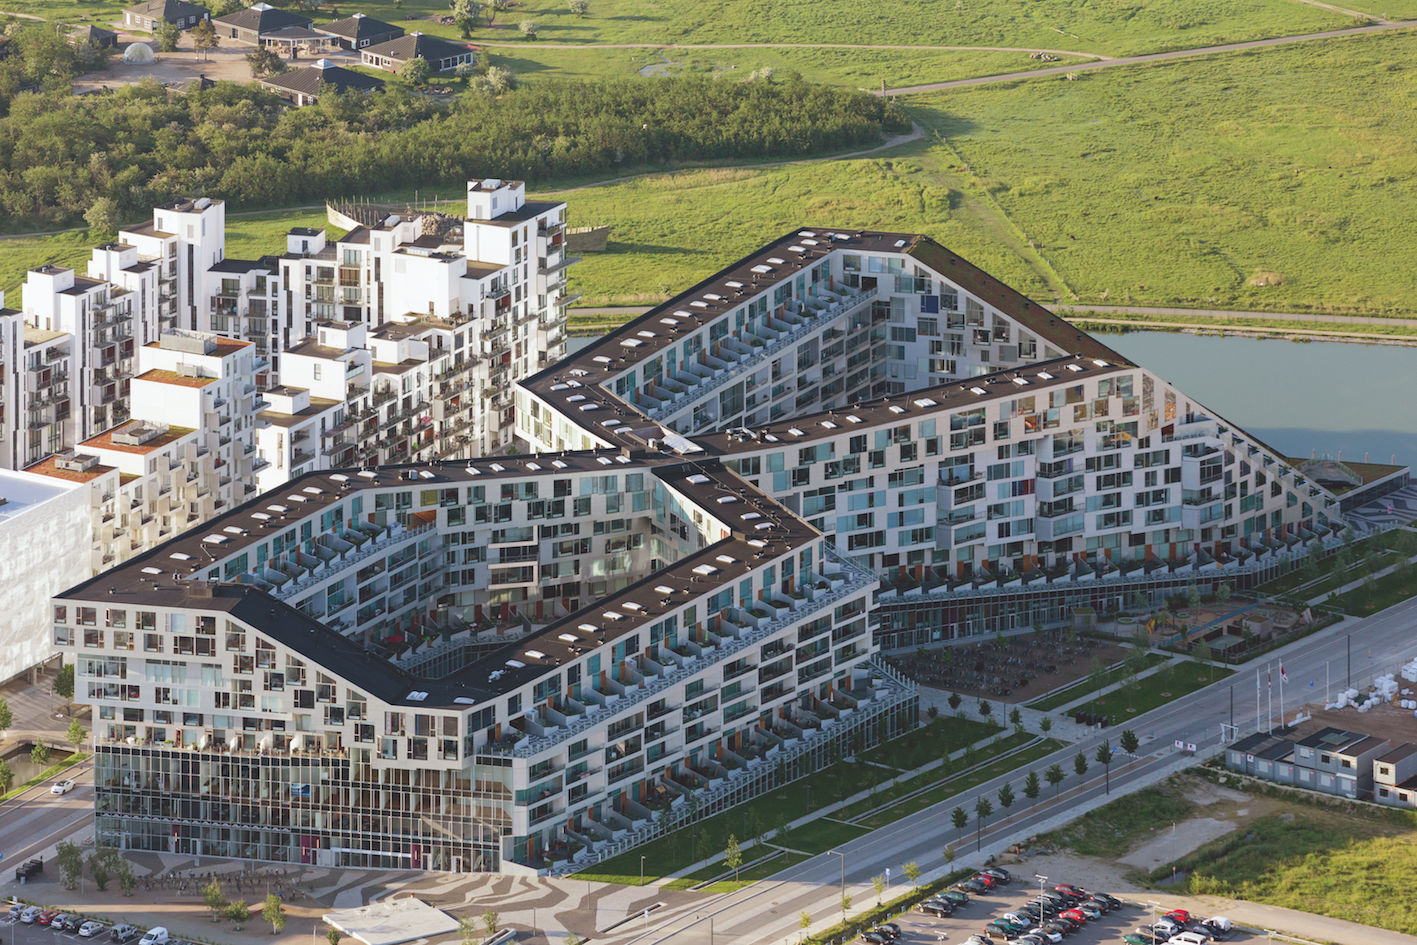 These Cool Apartment Blocks Show How Great Design Can Help